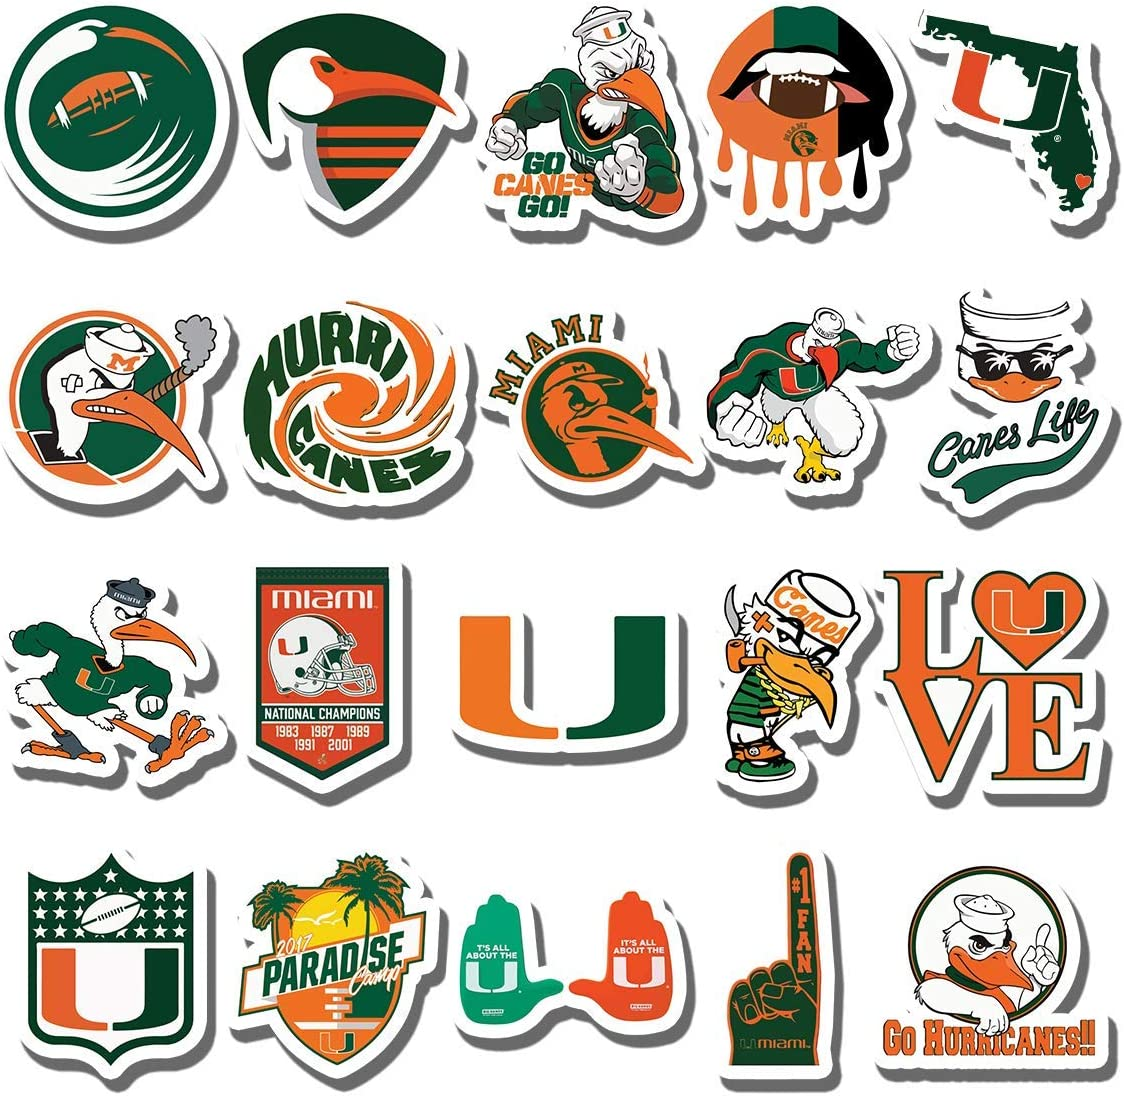 20 PCS Stickers Pack Miami Aesthetic Hurricanes Vinyl Colorful Waterproof for Water Bottle Laptop Bumper Car Bike Luggage Guitar Skateboard